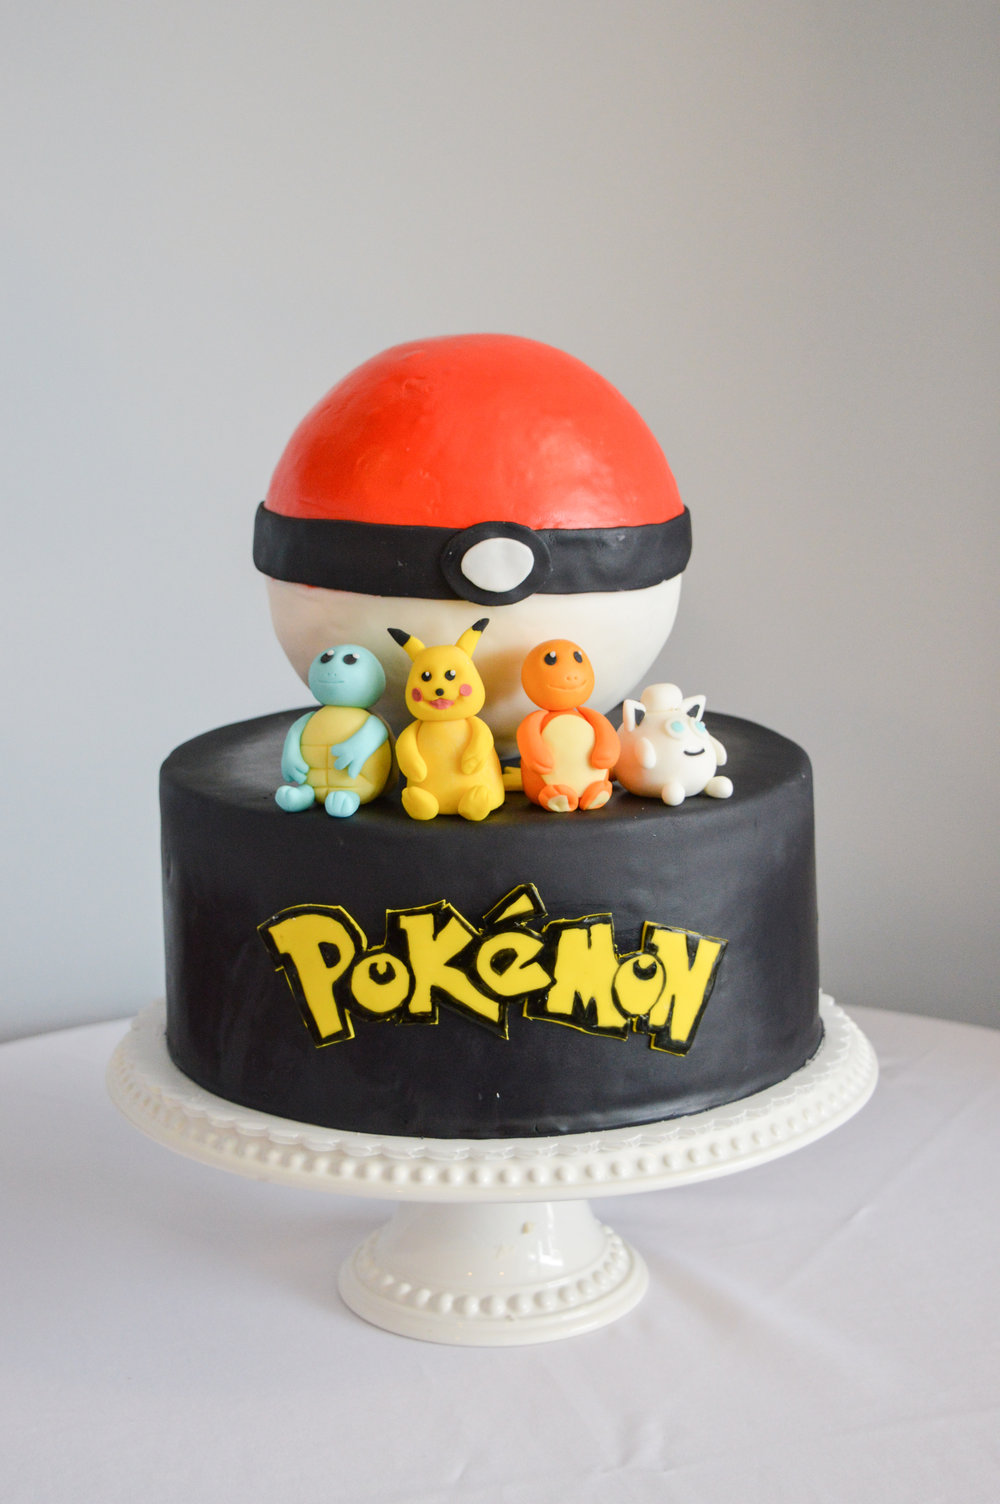 Pokemon Cake2.jpg